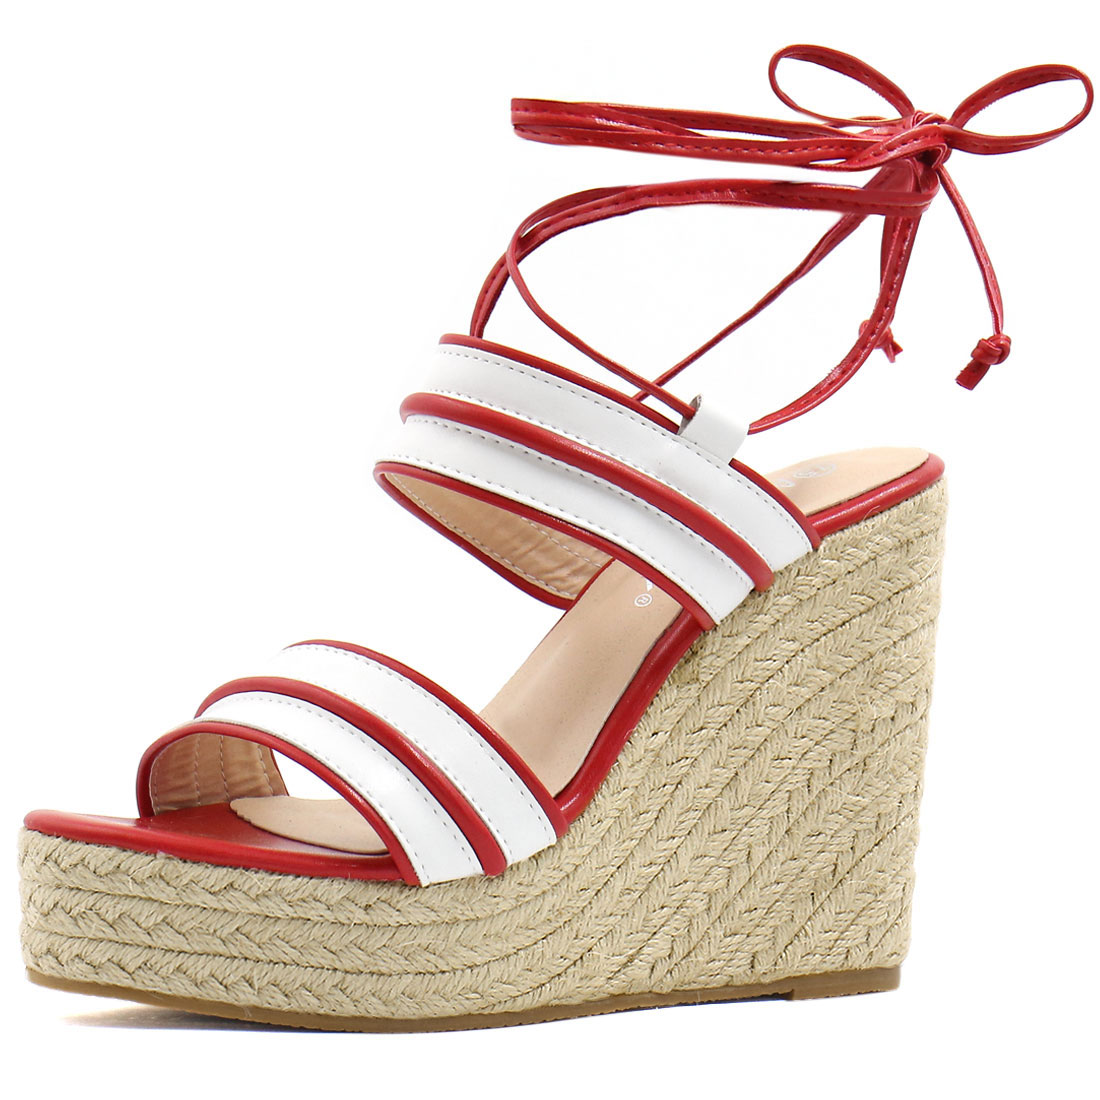 Women Striped Ankle Tie Espadrille Wedge Sandals White Red US 8.5